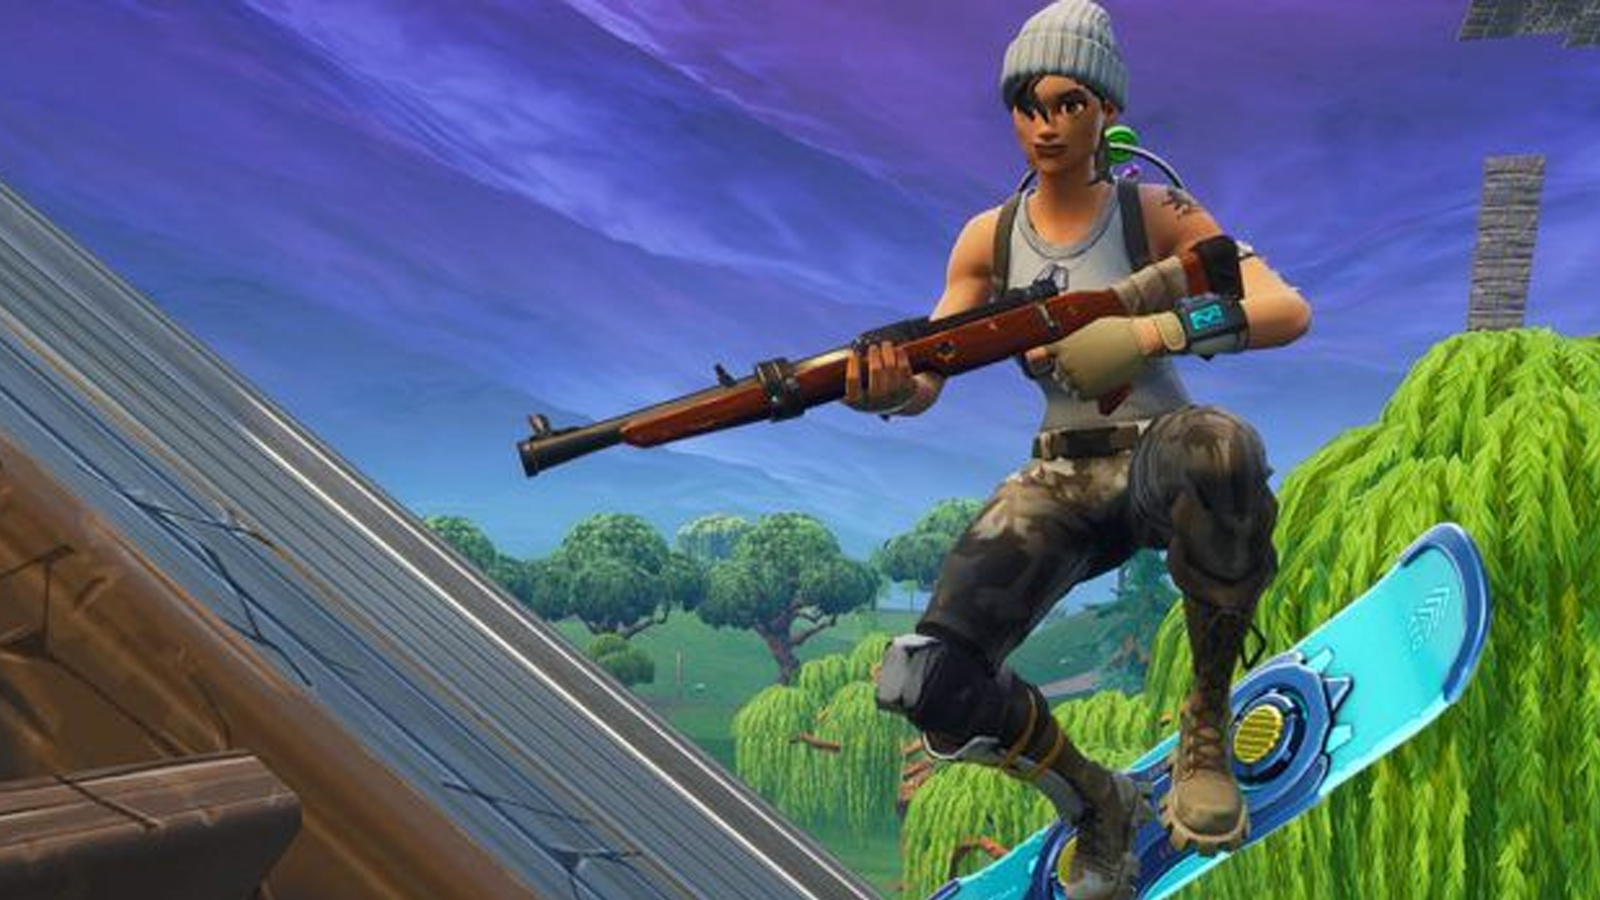 portada rifle legendario fortnite como conseguirlo